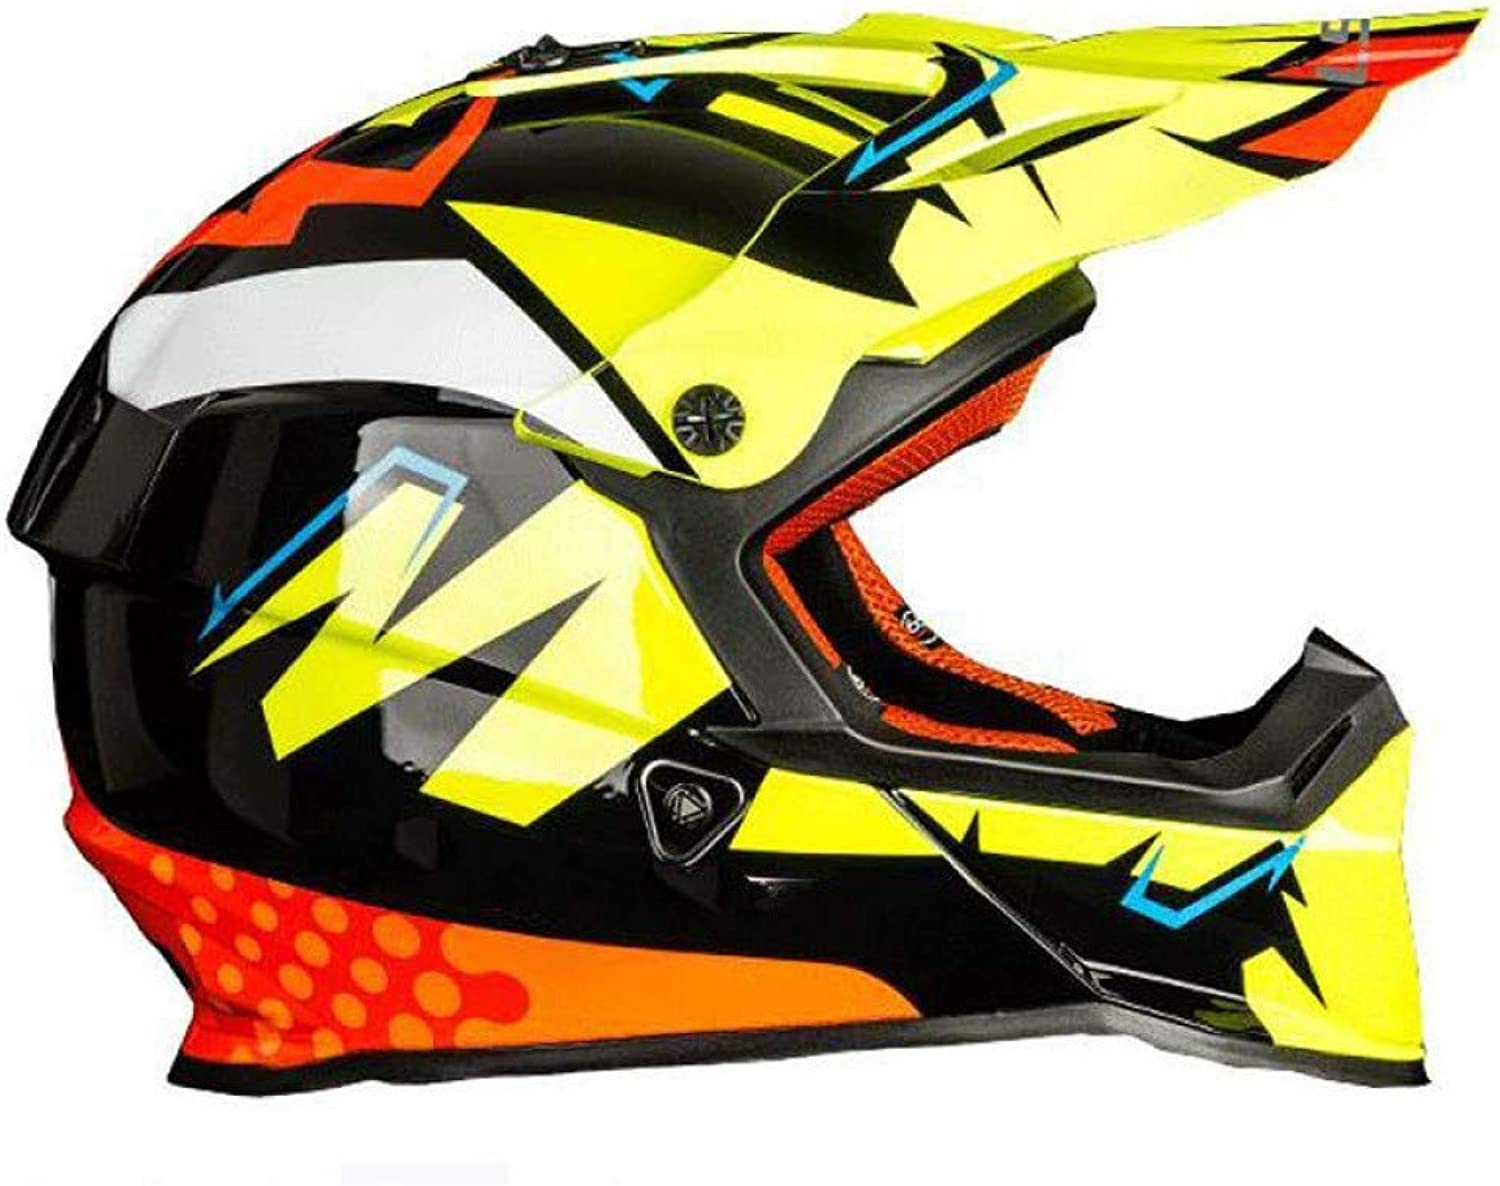 New Professional Motorcycle OffRoad Helmet UltraLight Material